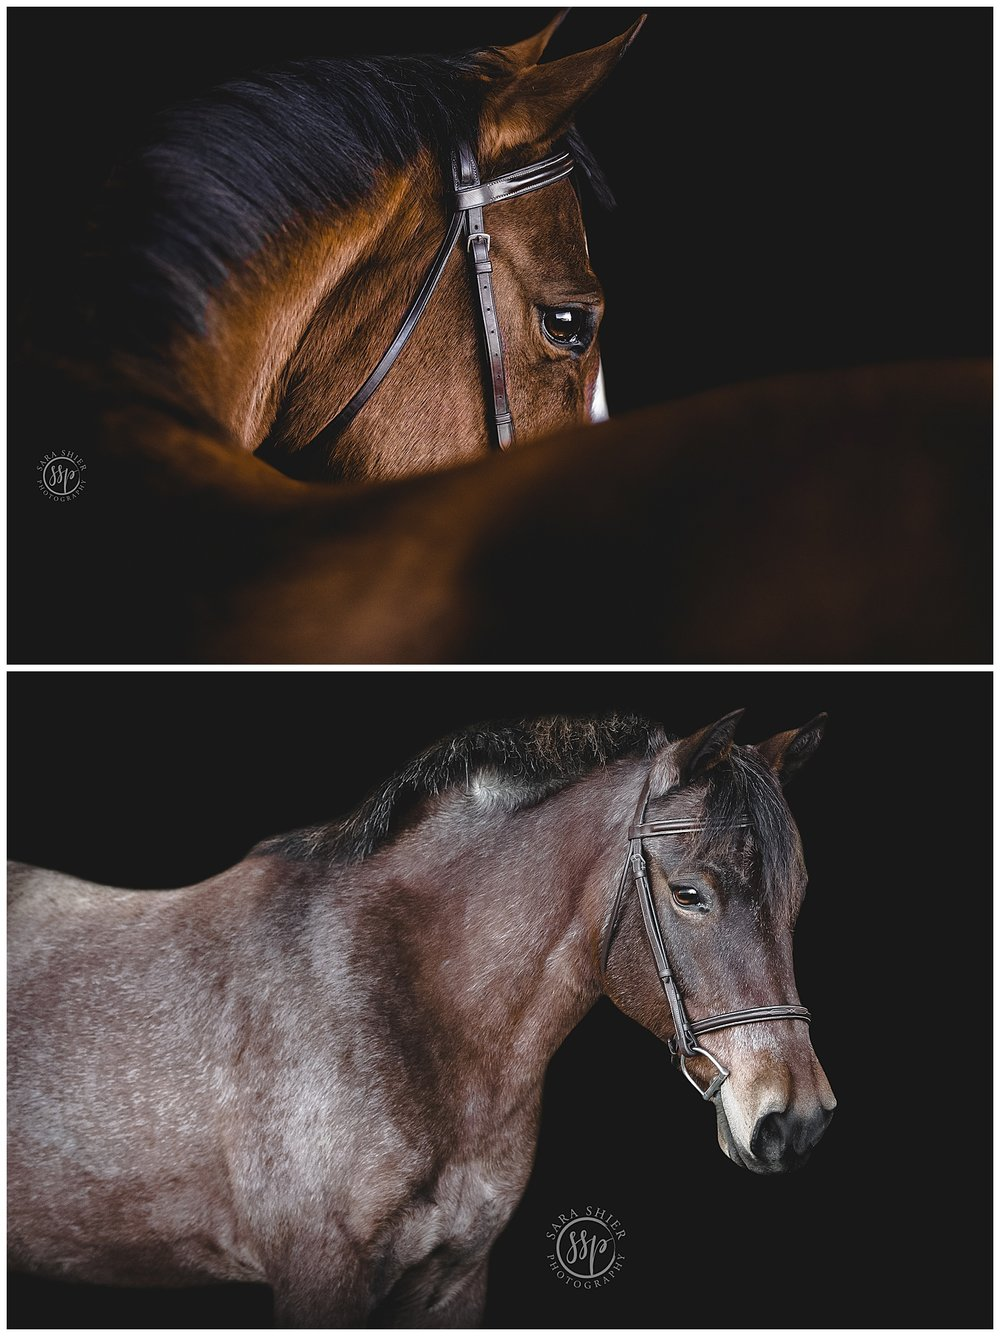 Black Background Horse Rider Equine Photographer Southern California Sara Shier Photography SoCal Equestrian Cowgirl_0230.jpg